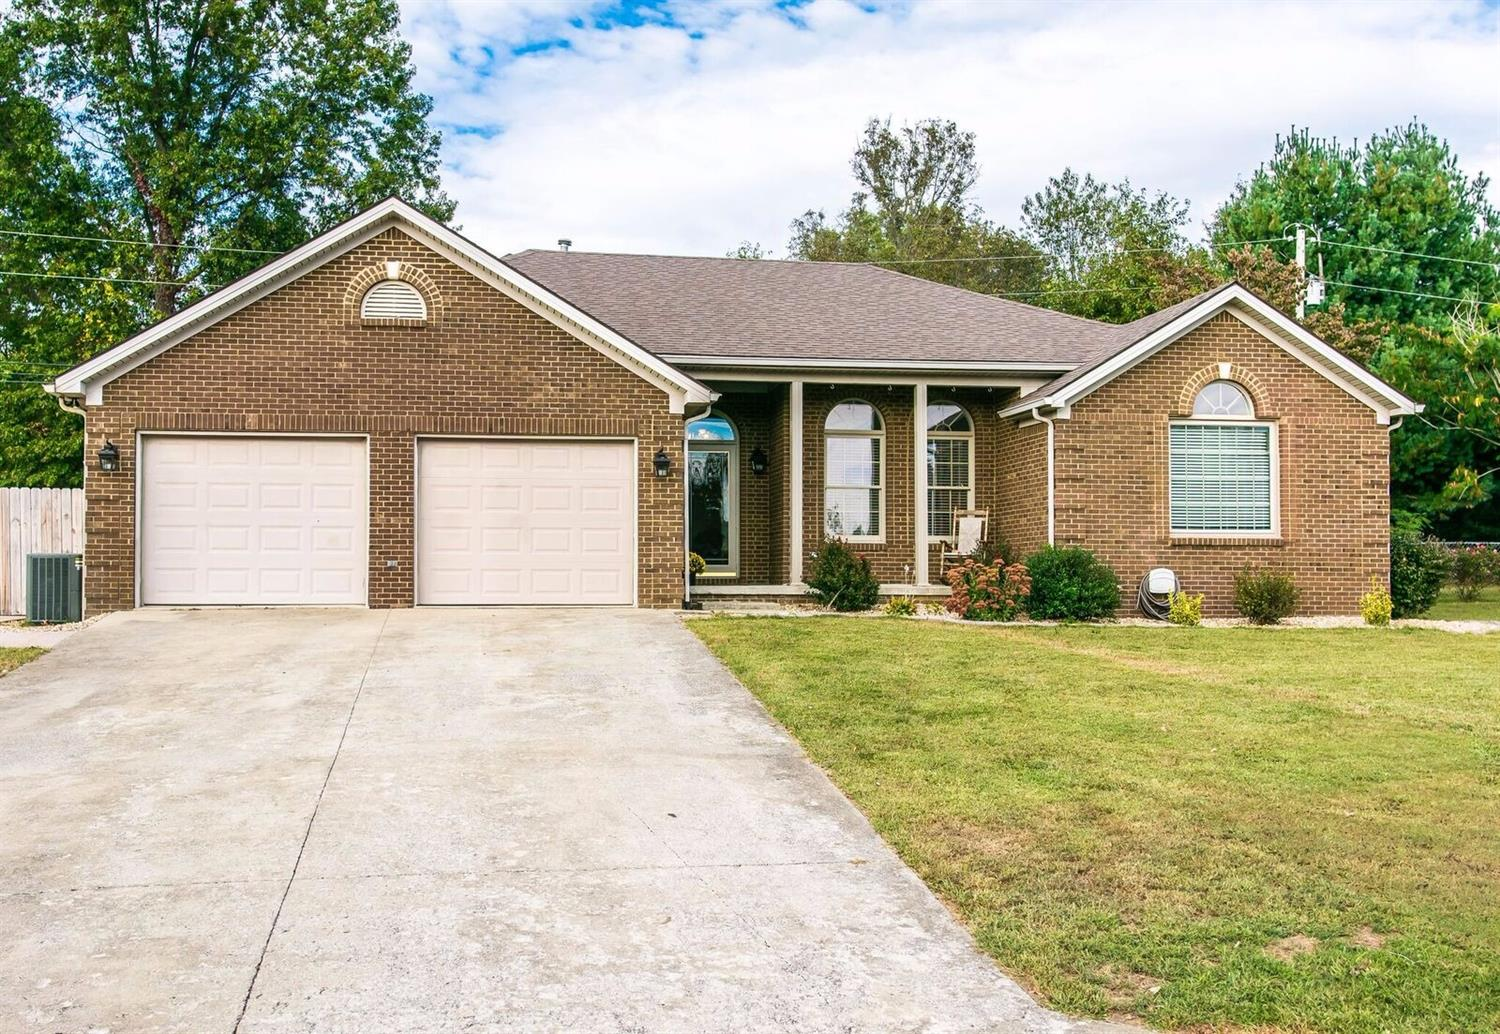 Sugarville  Subdivision Homes For Sale